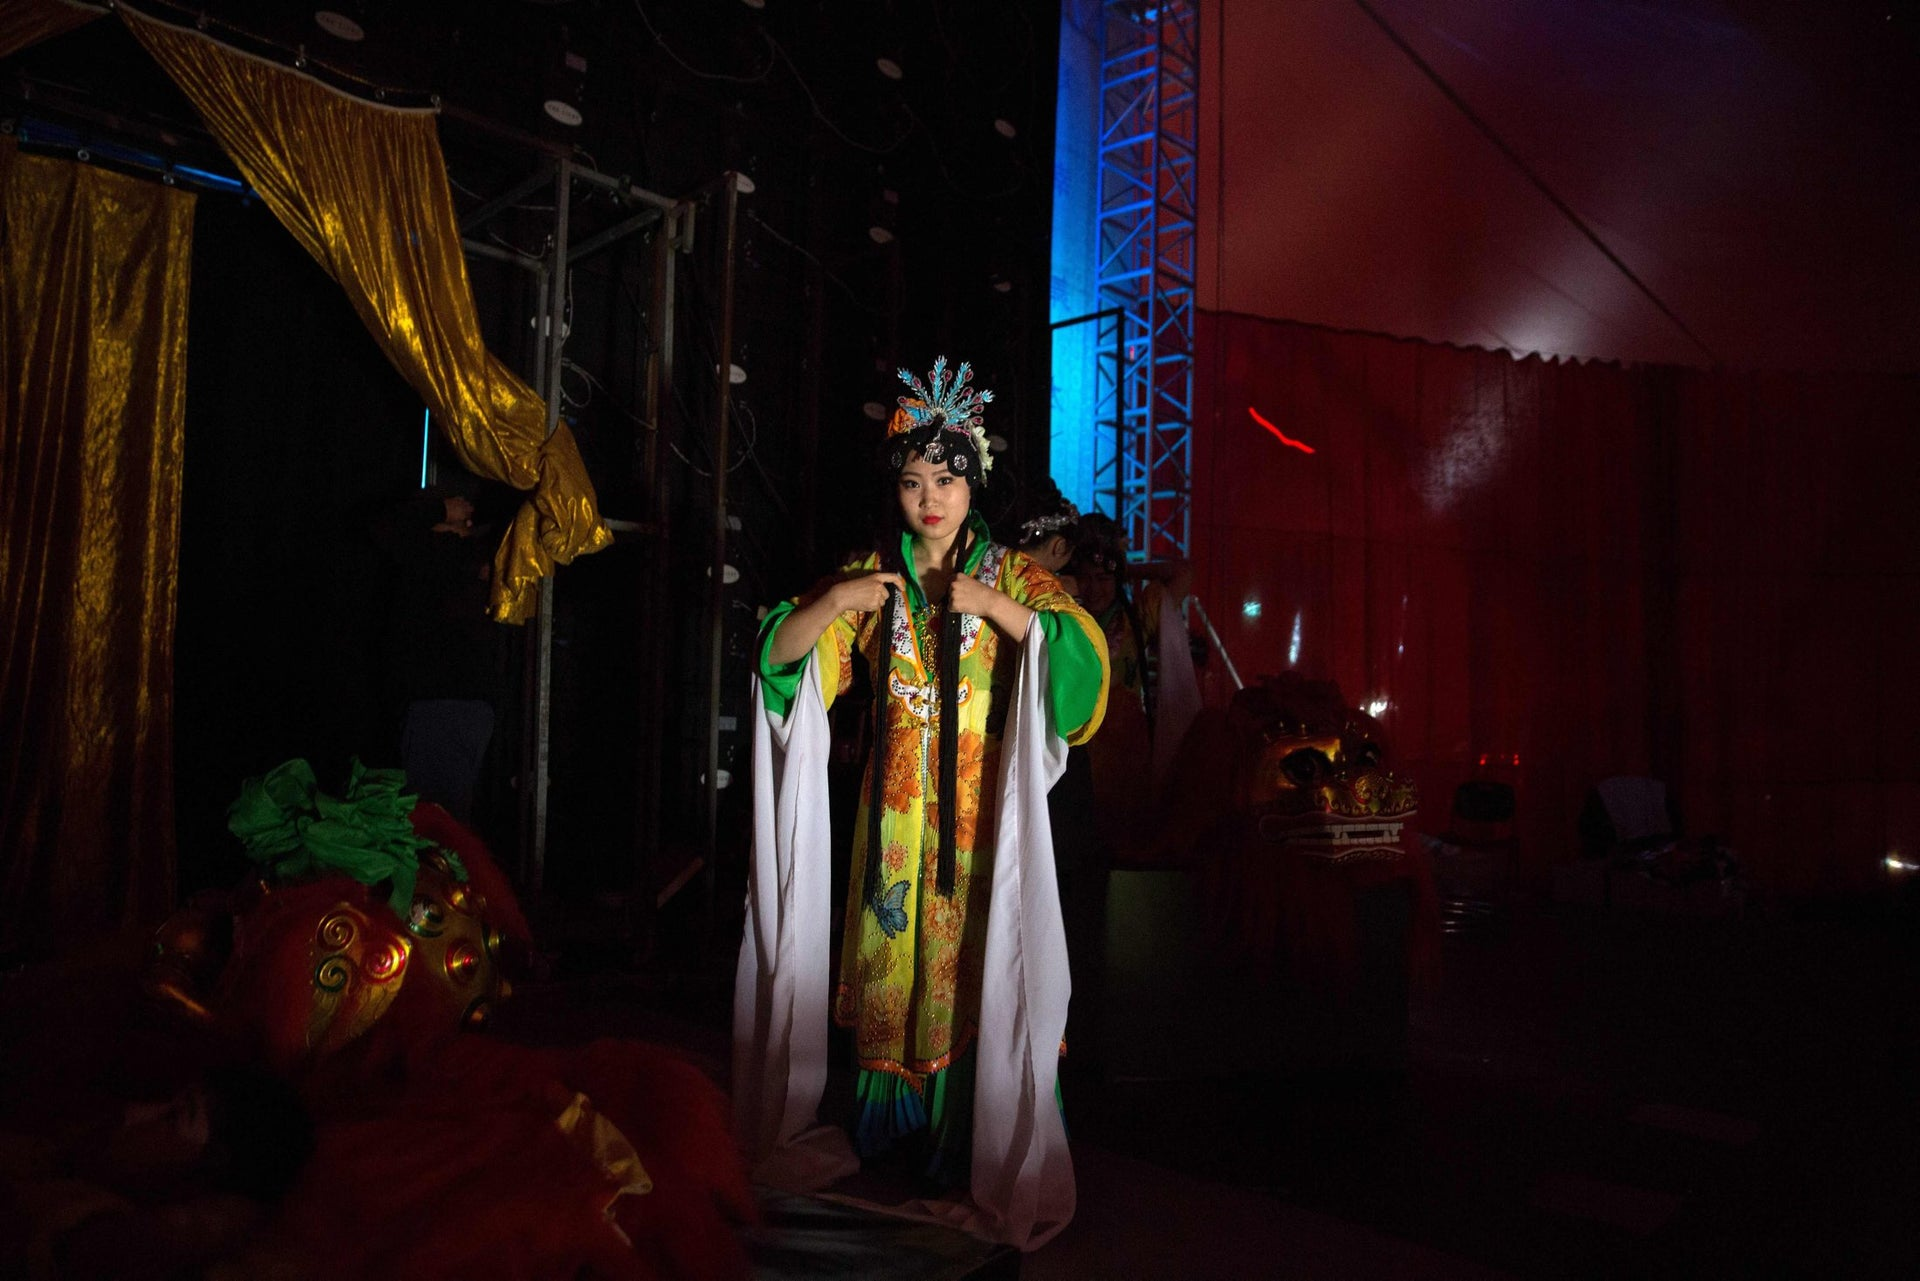 A Chinese circus acrobat from the Hebei acrobatic troupe puts on the final touches to her Chinese costume as she waits backstage prior to their performance in the northern Israeli port city of Haifa on March 29, 2016.